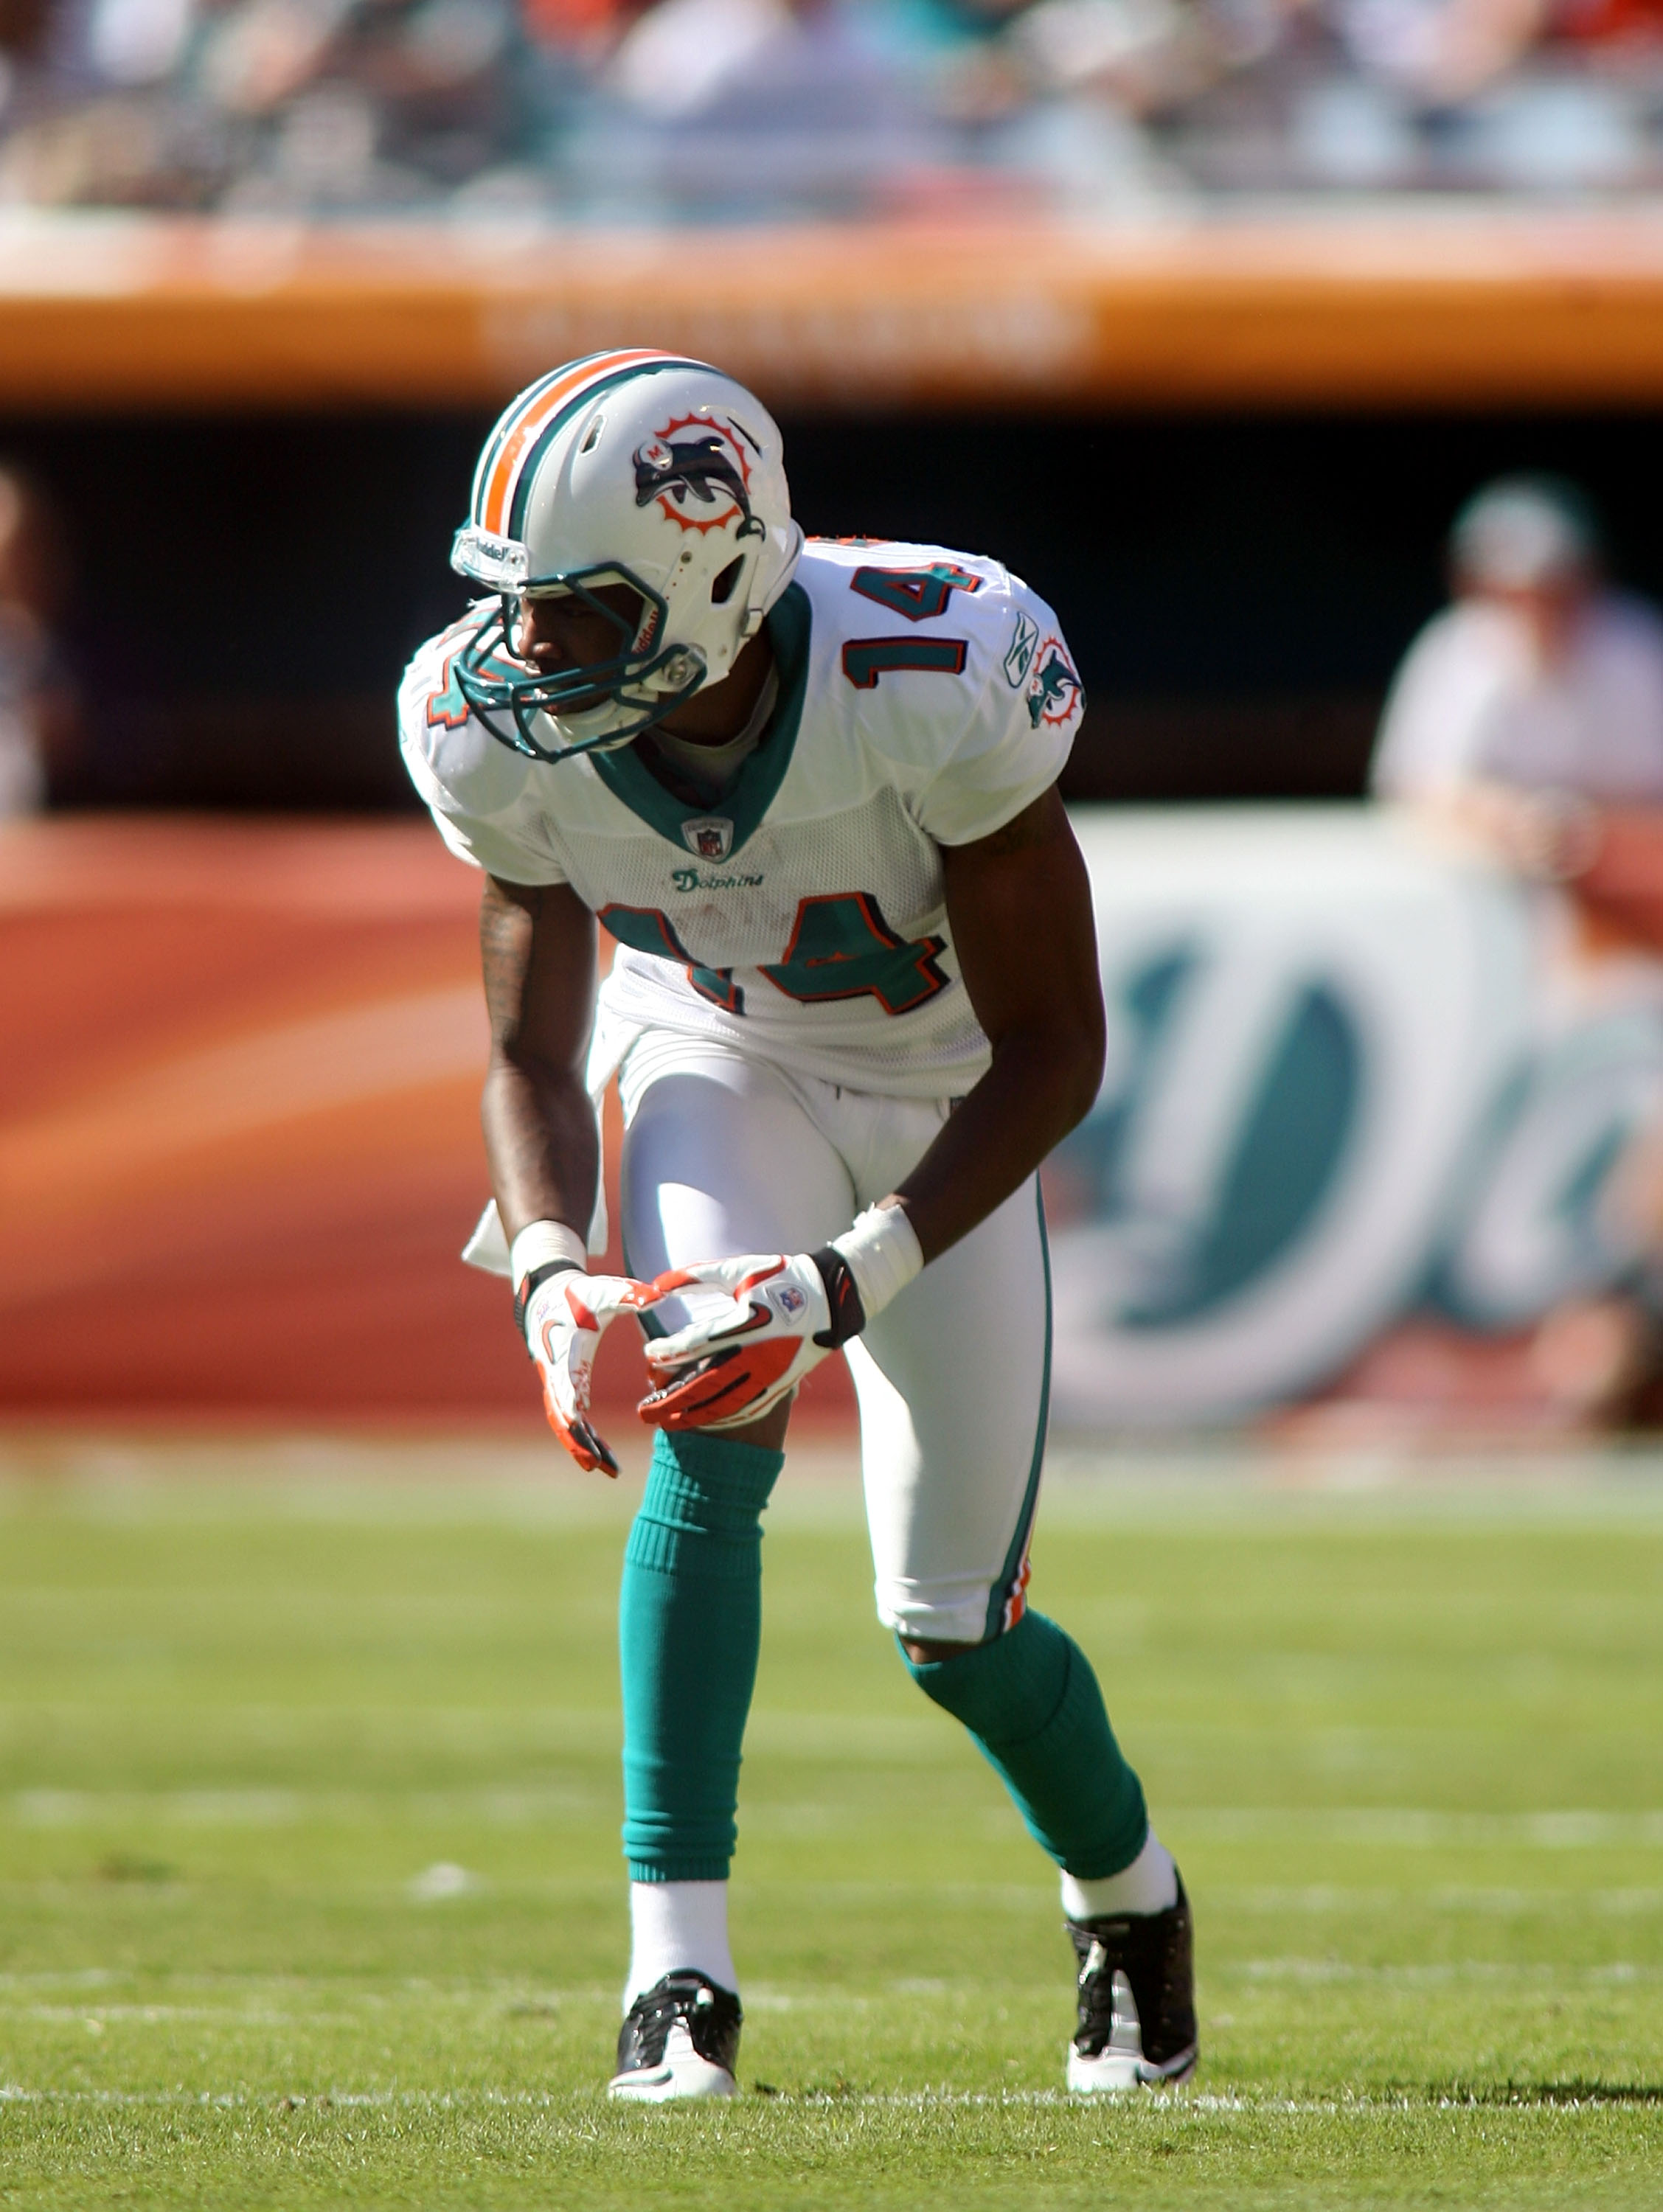 MIAMI, FL - DECEMBER 05: Receiver Marlon Moore #14  of the Miami Dolphins against the Cleveland Browns at Sun Life Stadium on December 5, 2010 in Miami, Florida. Cleveland defeated Miami 13-10.  (Photo by Marc Serota/Getty Images)